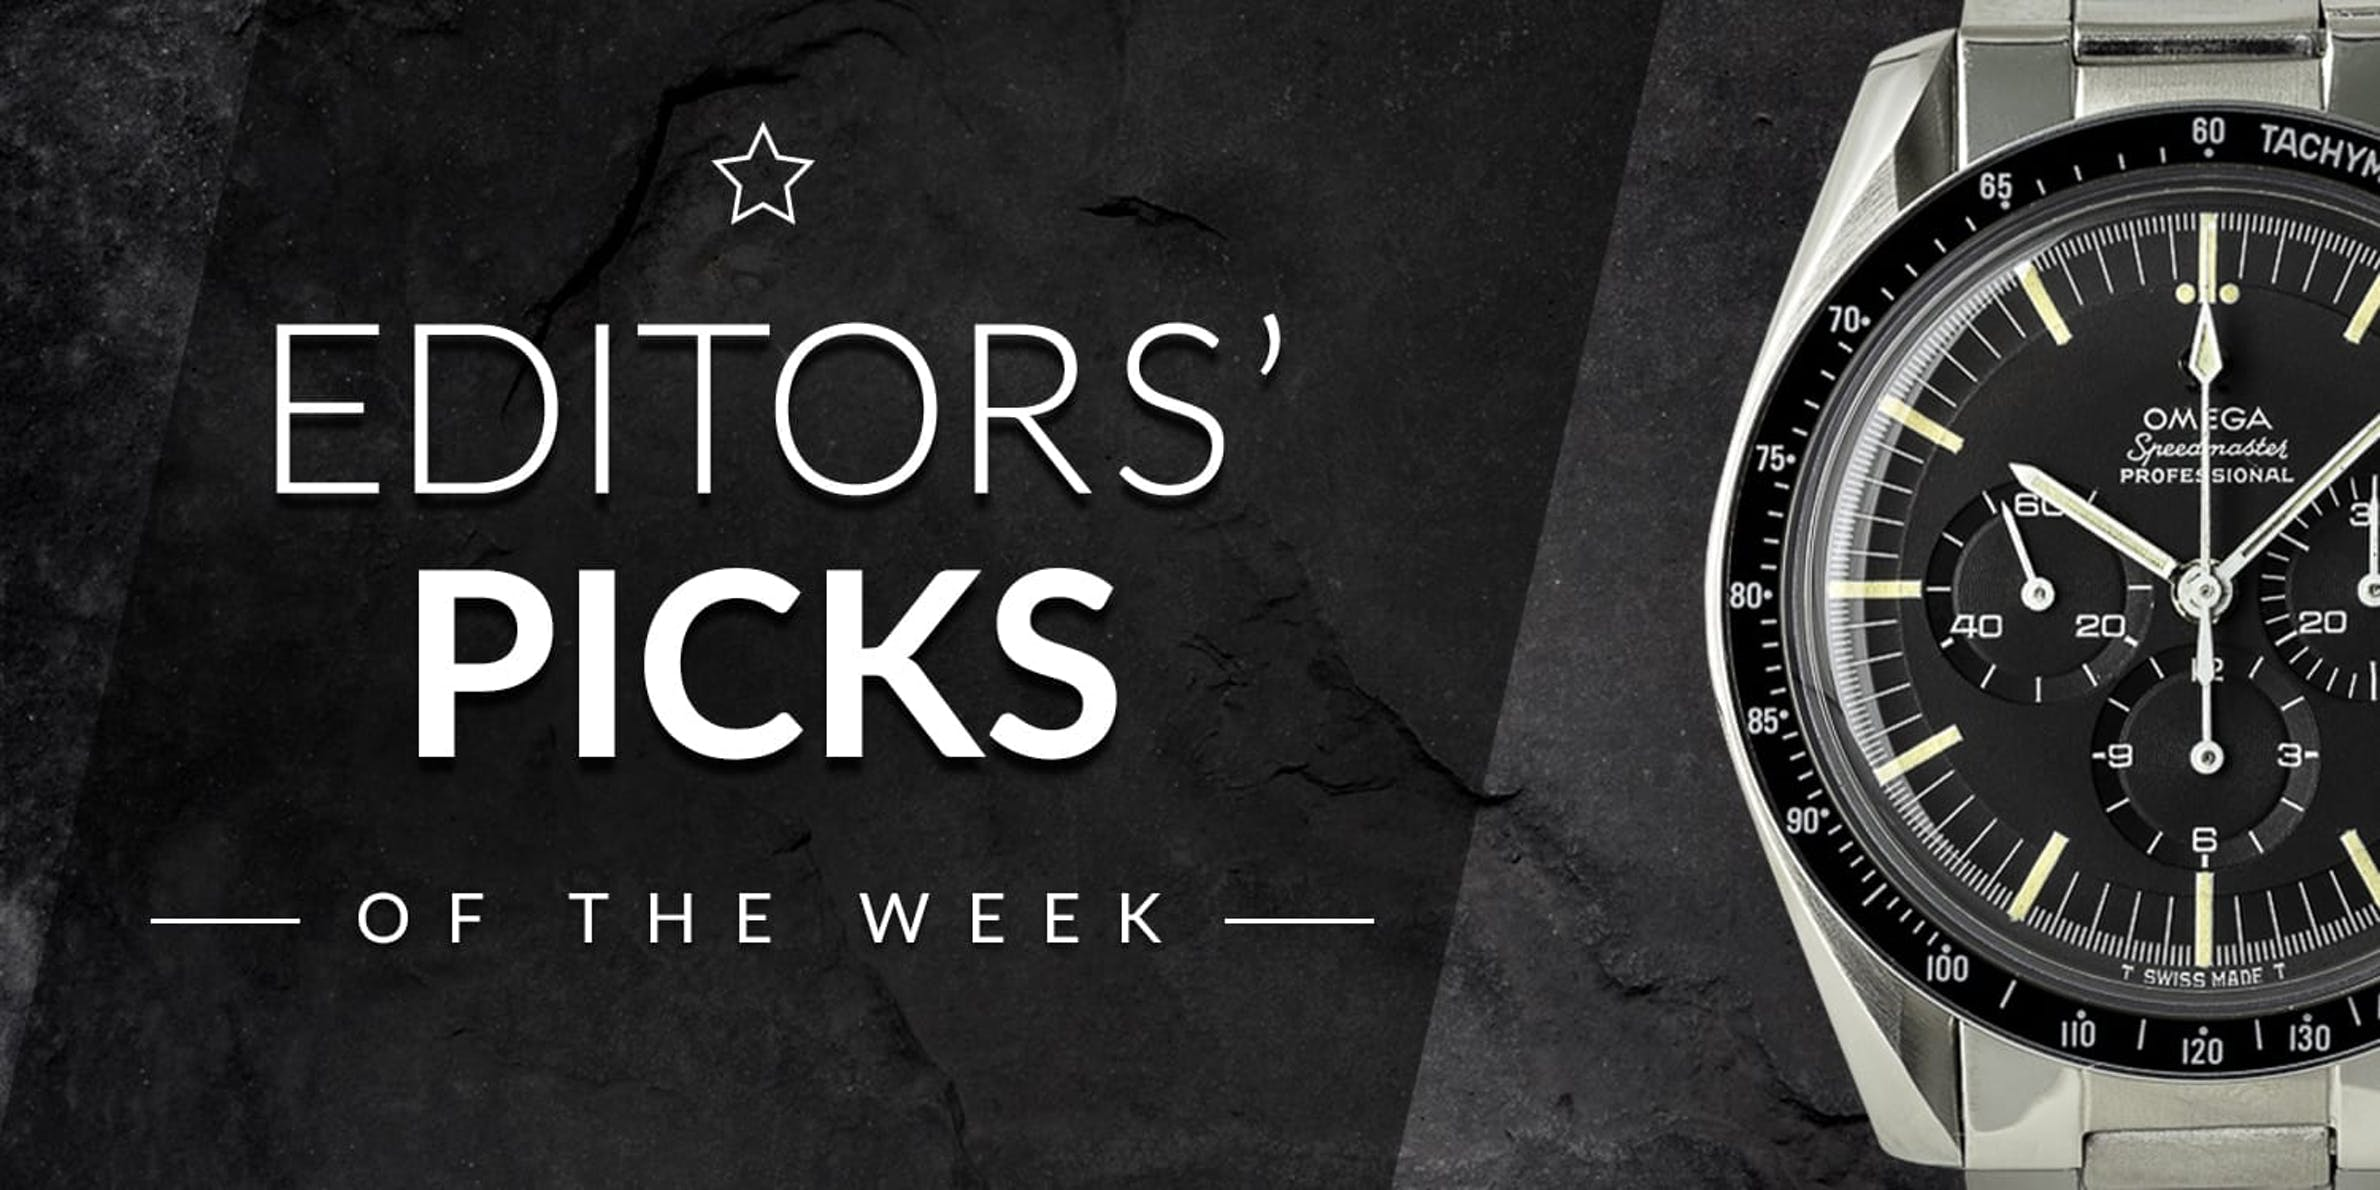 Editors' Picks of the Week: Omega, Rolex, and Breitling